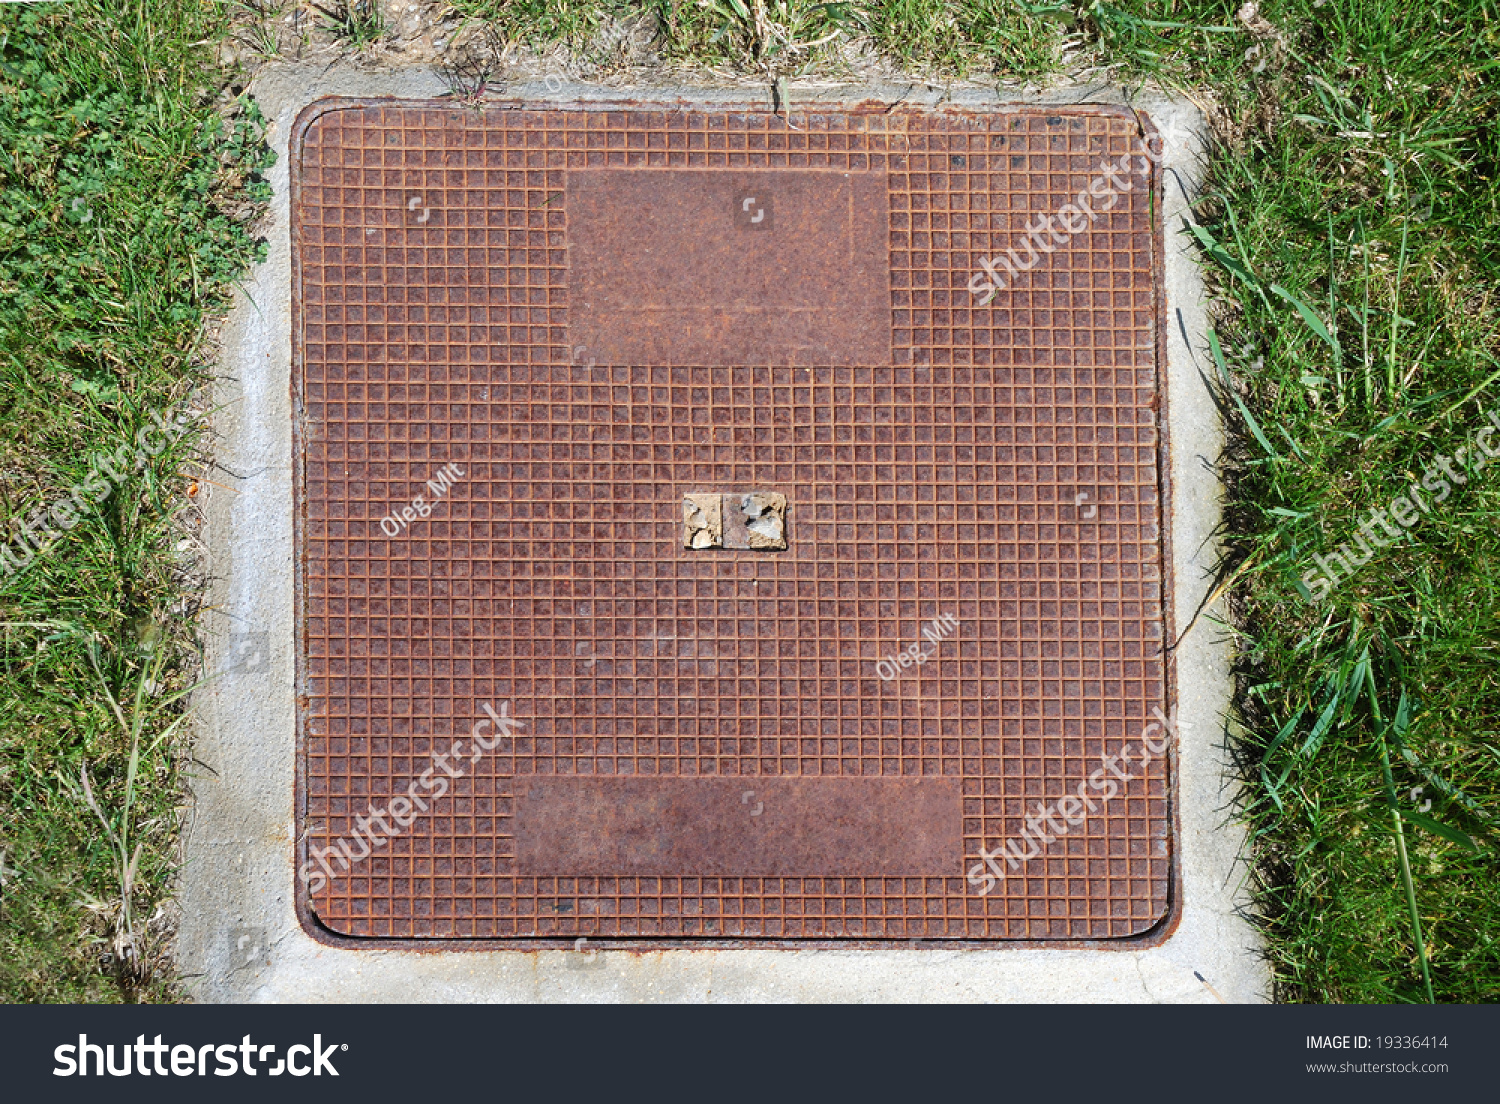 Square Metal Sewer Hatch With Light Rust On The Concrete